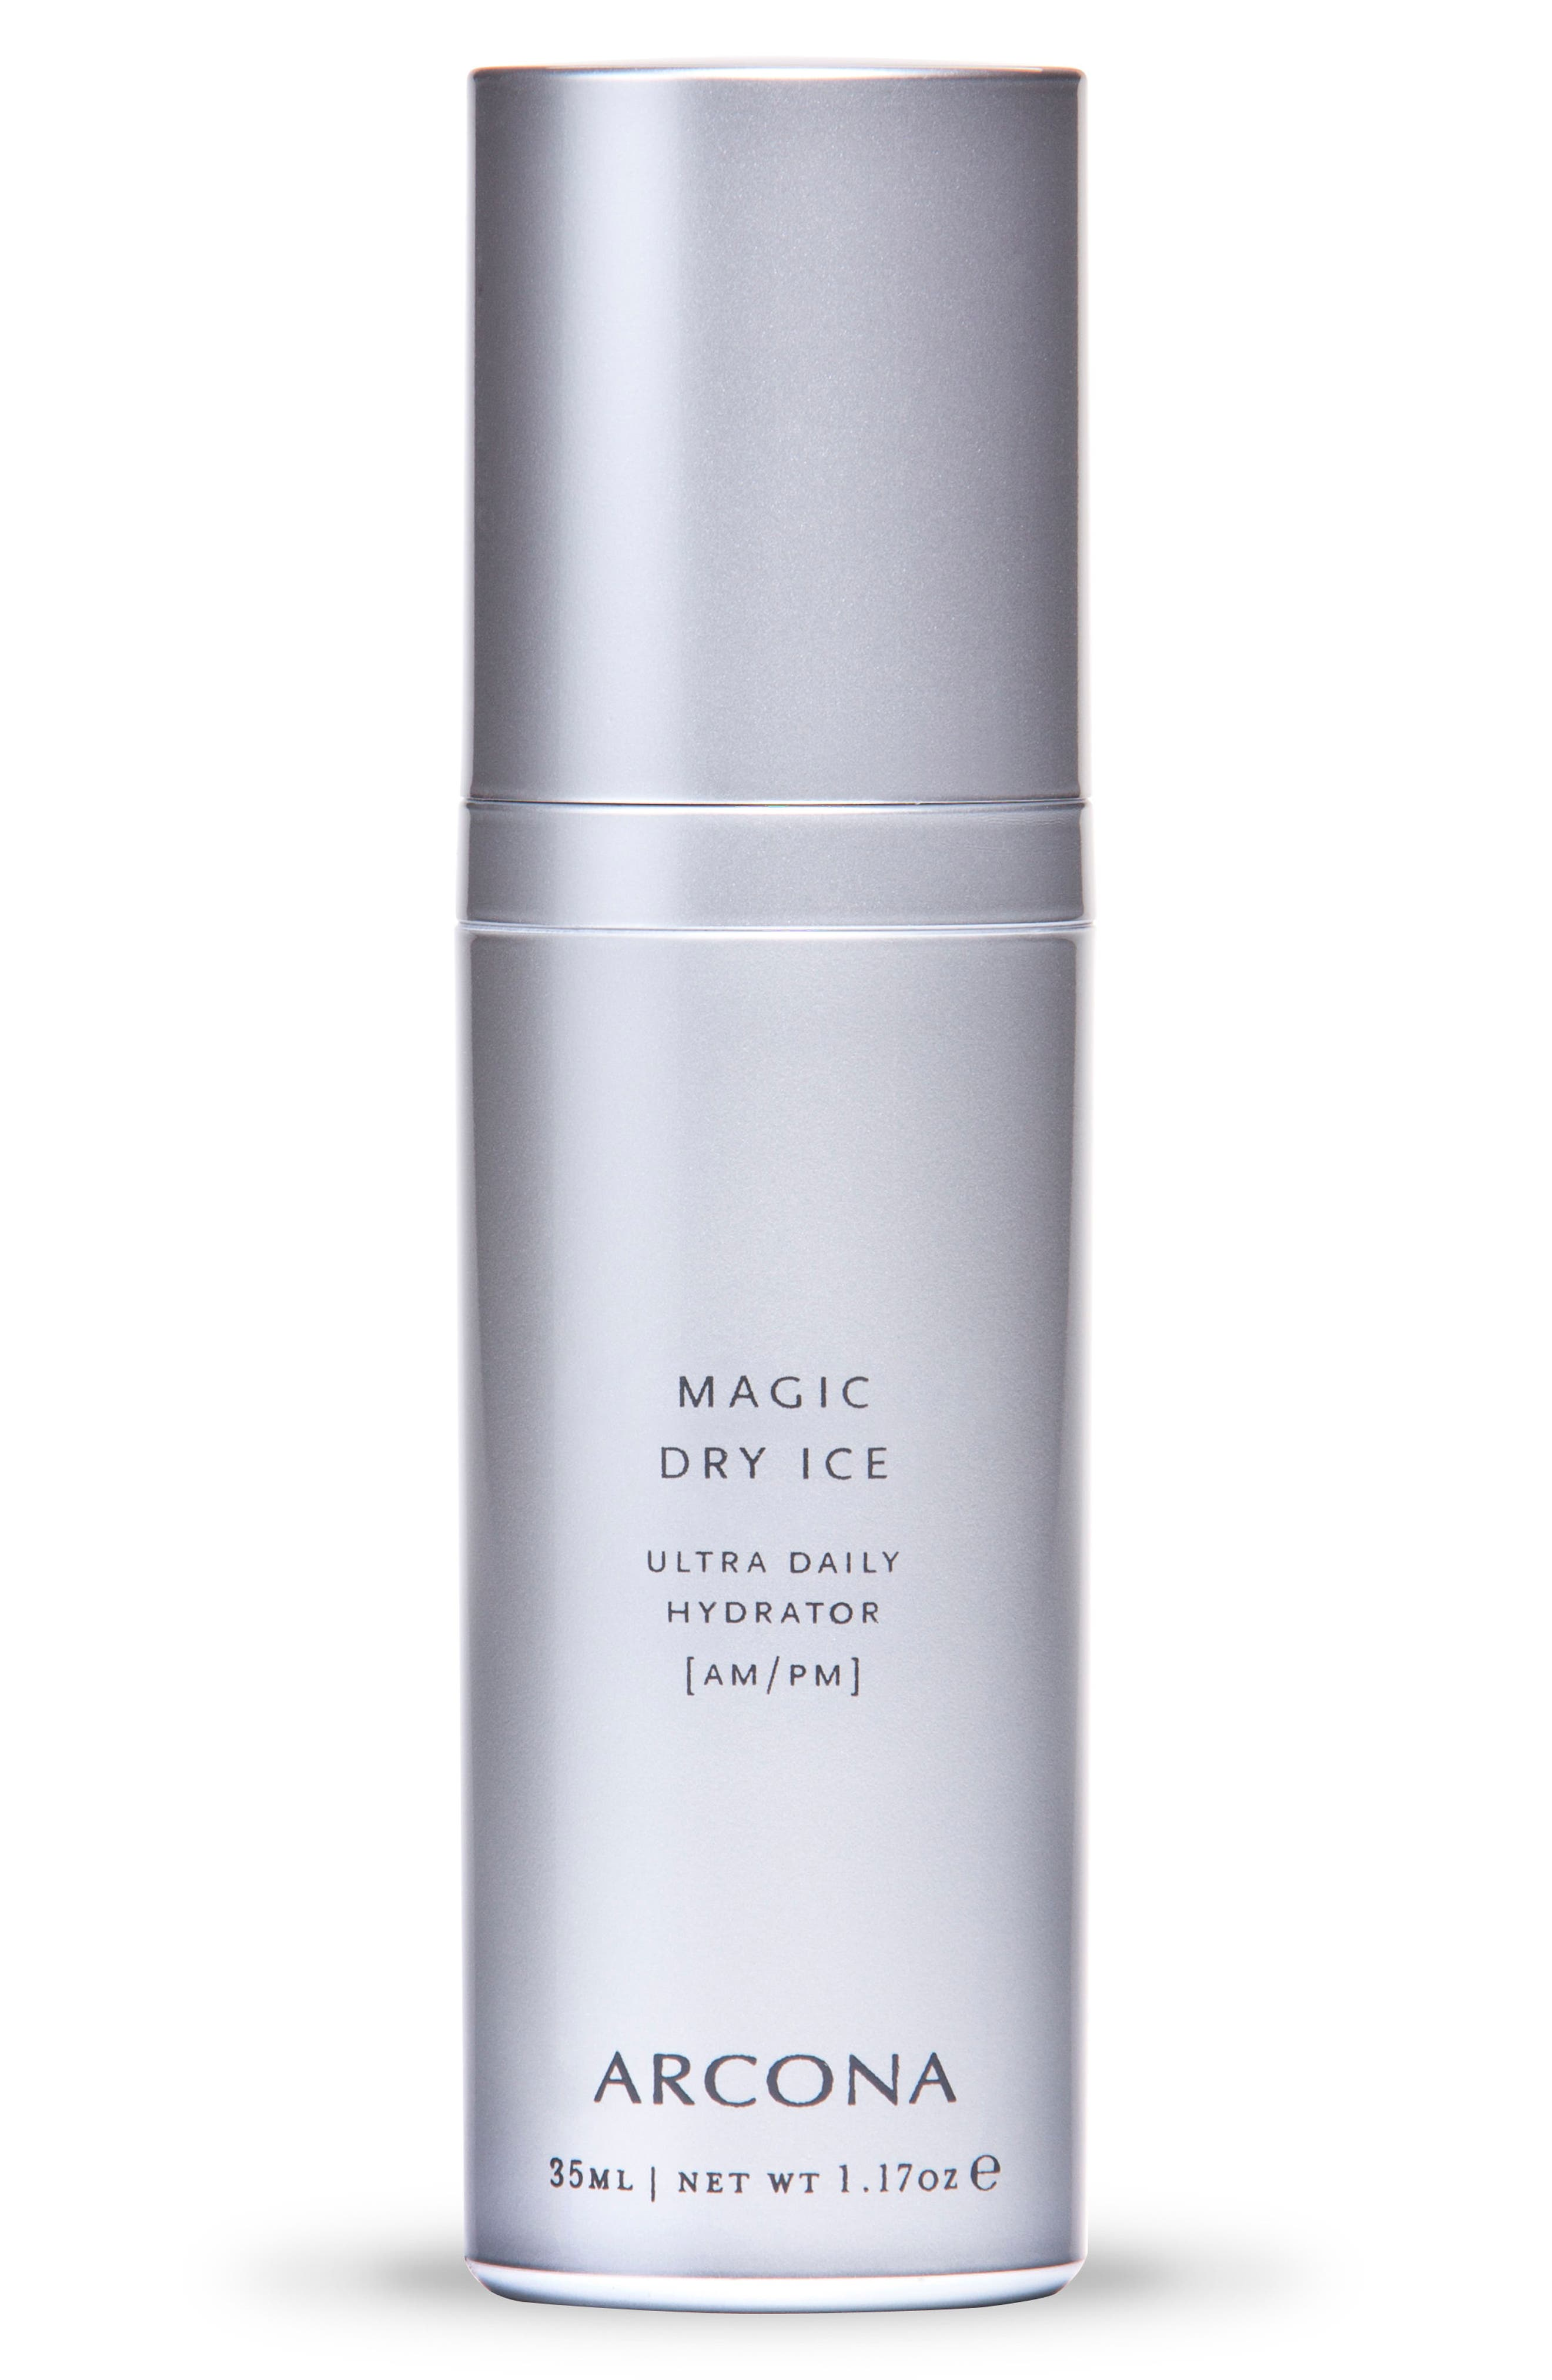 ARCONA Magic Dry Ice Hydrating Gel